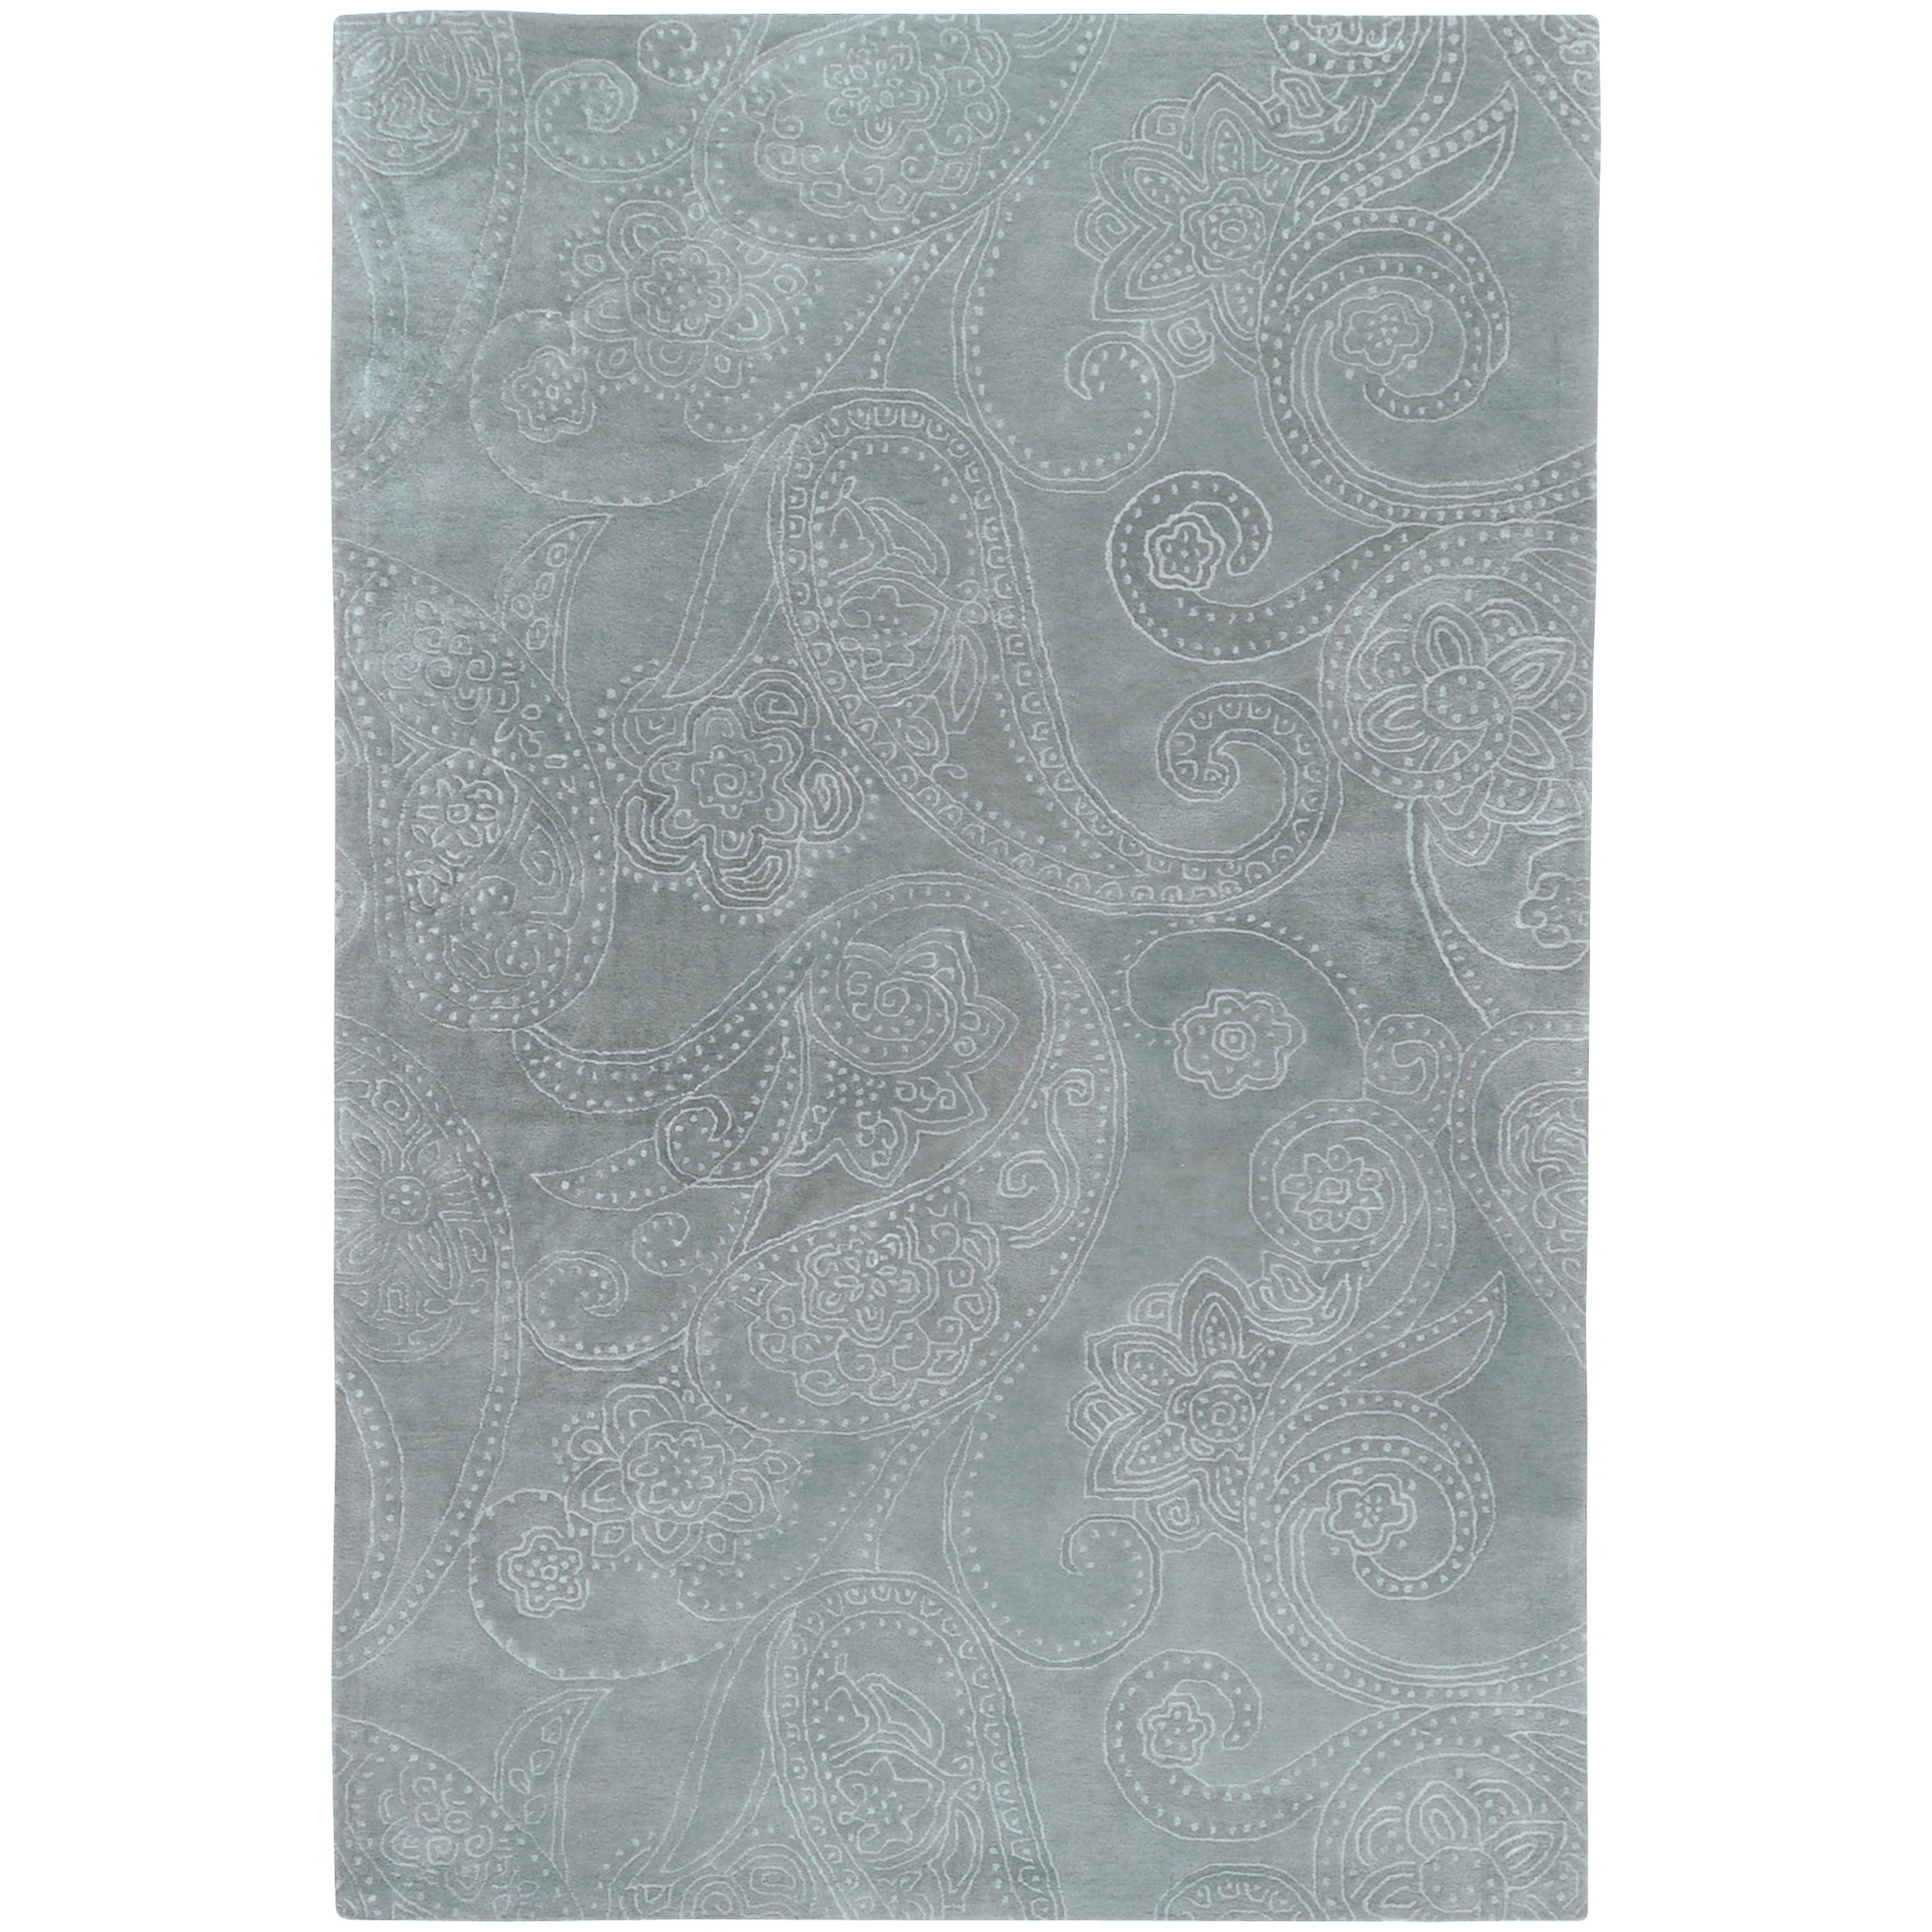 Candice Olson Hand-tufted Blue Eau Claire New Zealand Wool Rug (2' x 3')